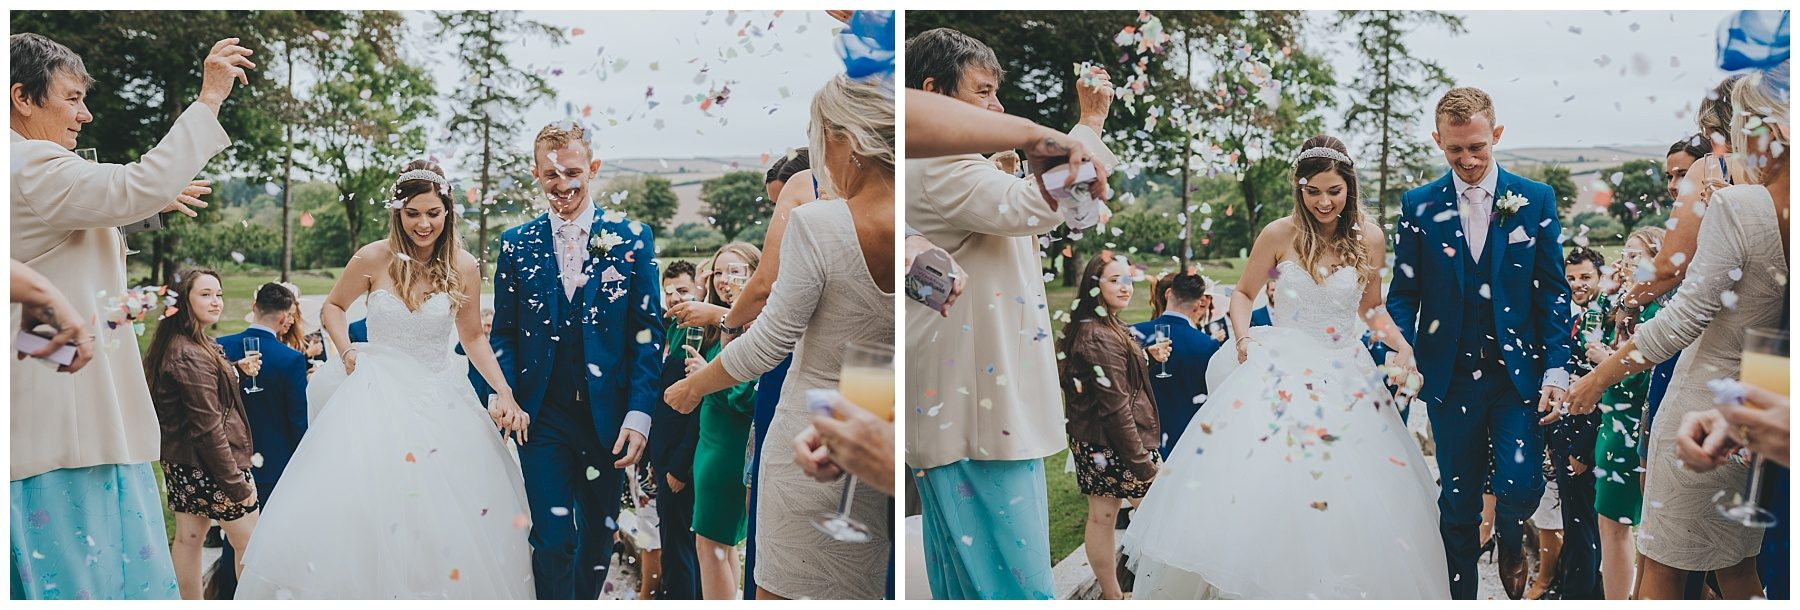 Cornwall wedding photography wedding confetti photo